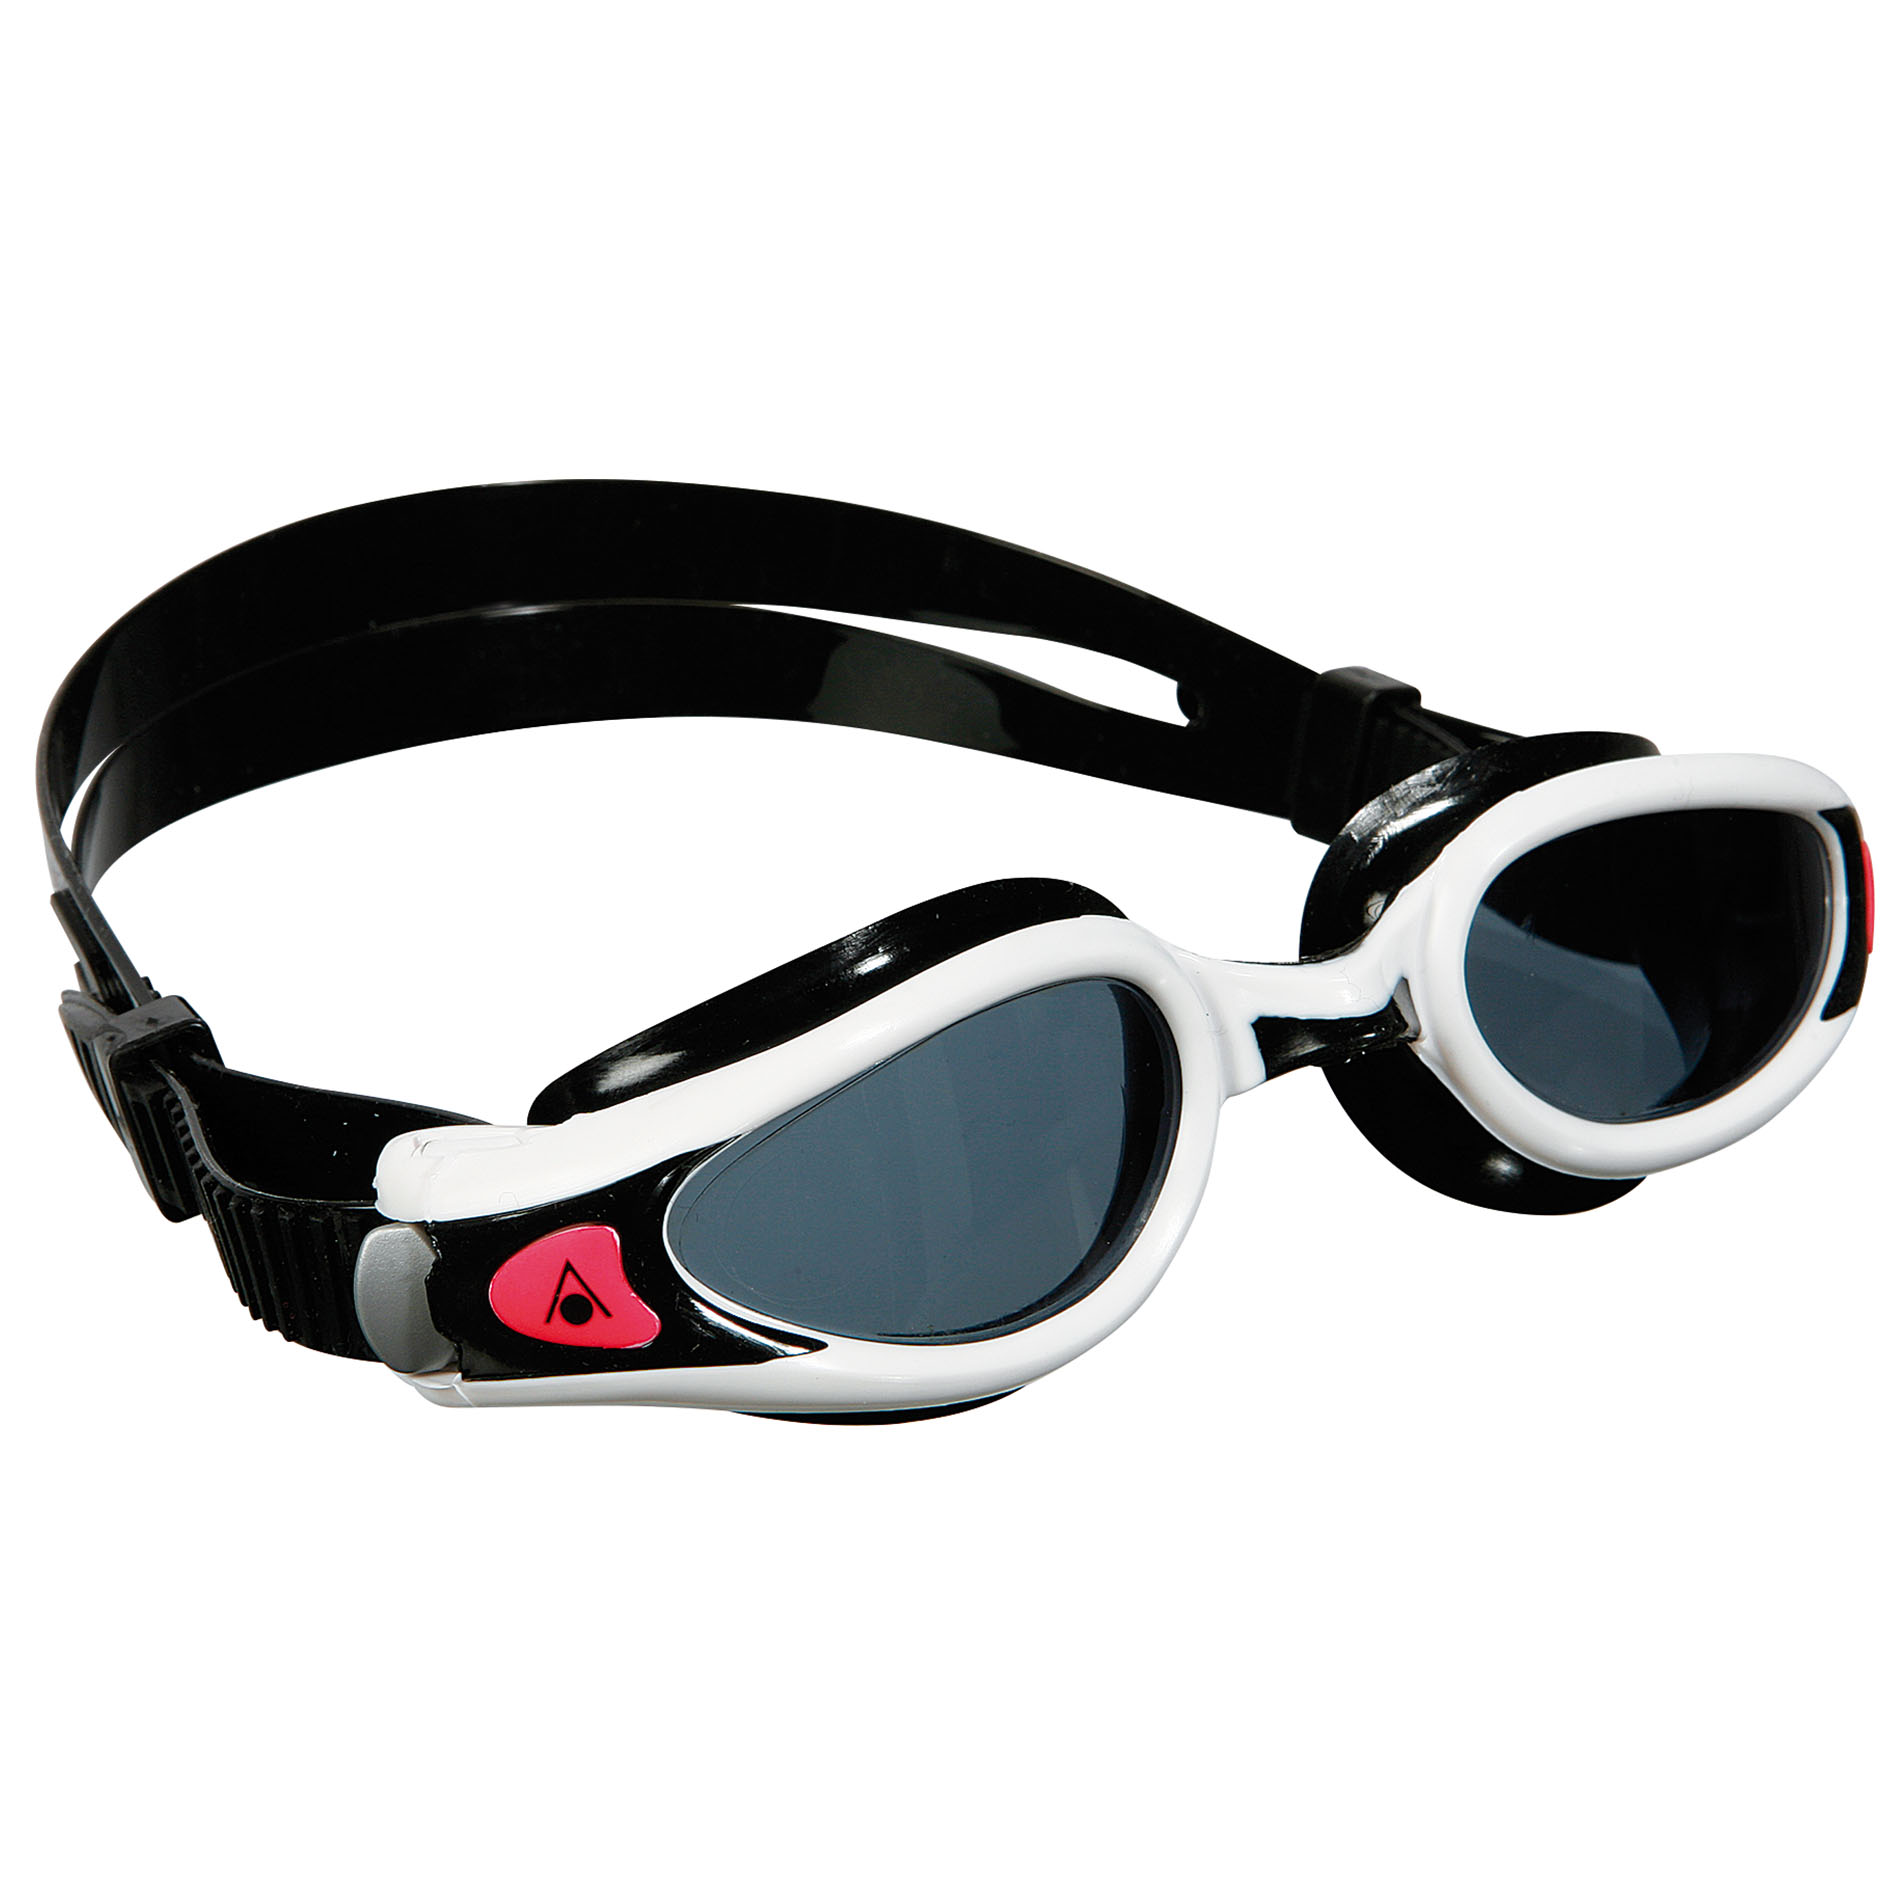 Aqua Sphere Kaiman Exo Ladies Swimming Goggles  Tinted Lens  WhiteBlack